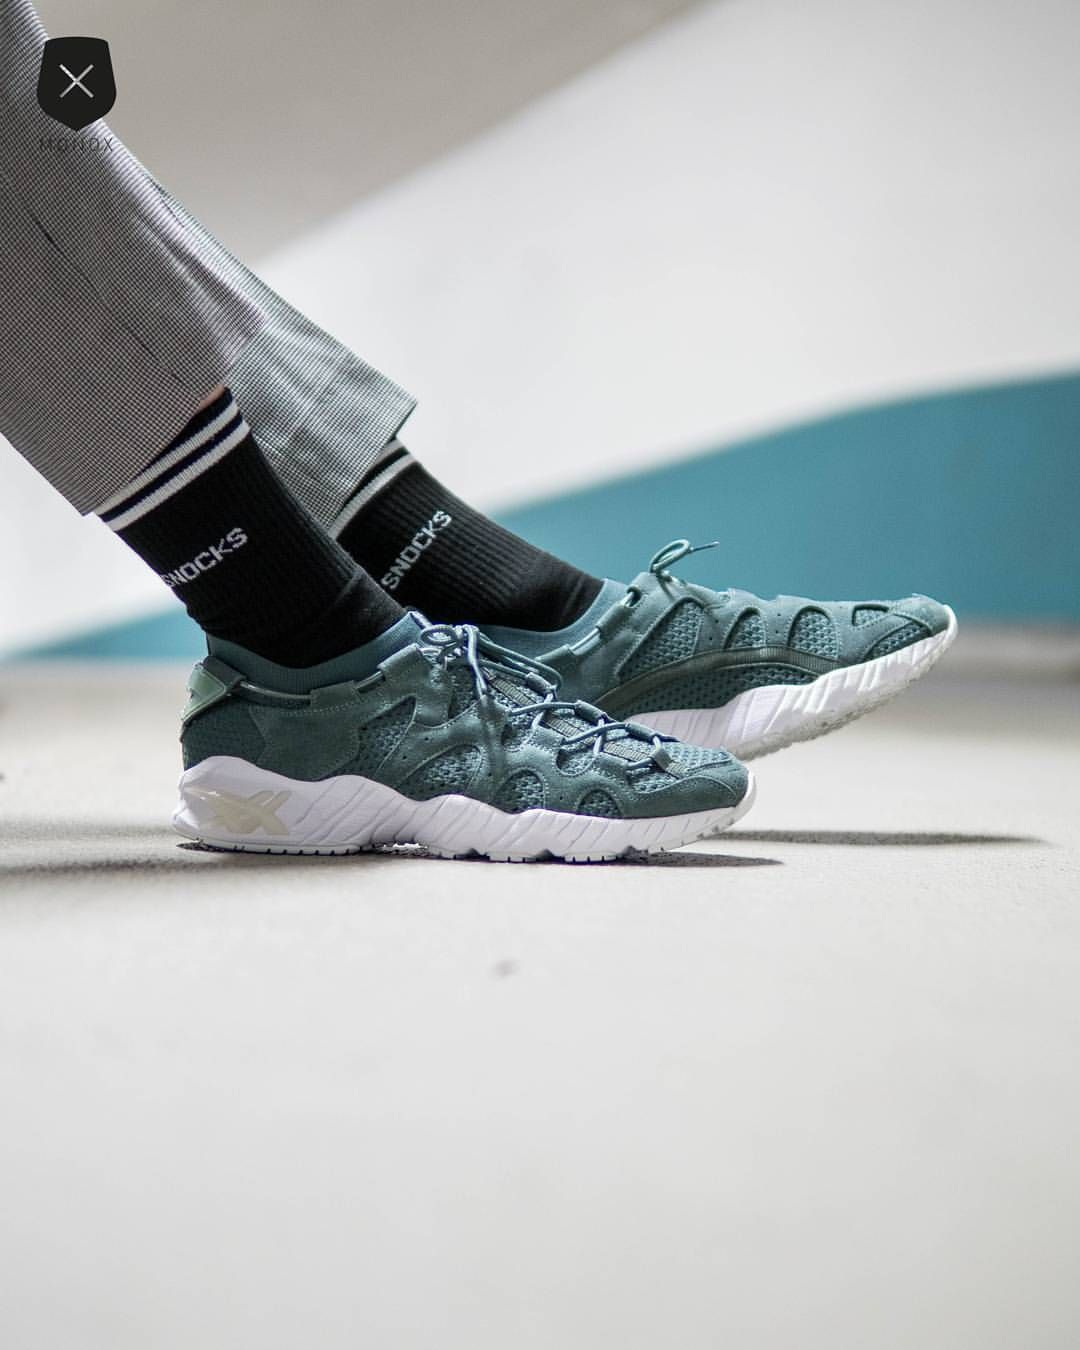 check out 7f337 9a800 Asics Gel-Mai Knit: Teal Green | Sneakers: Asics Gel Mai ...